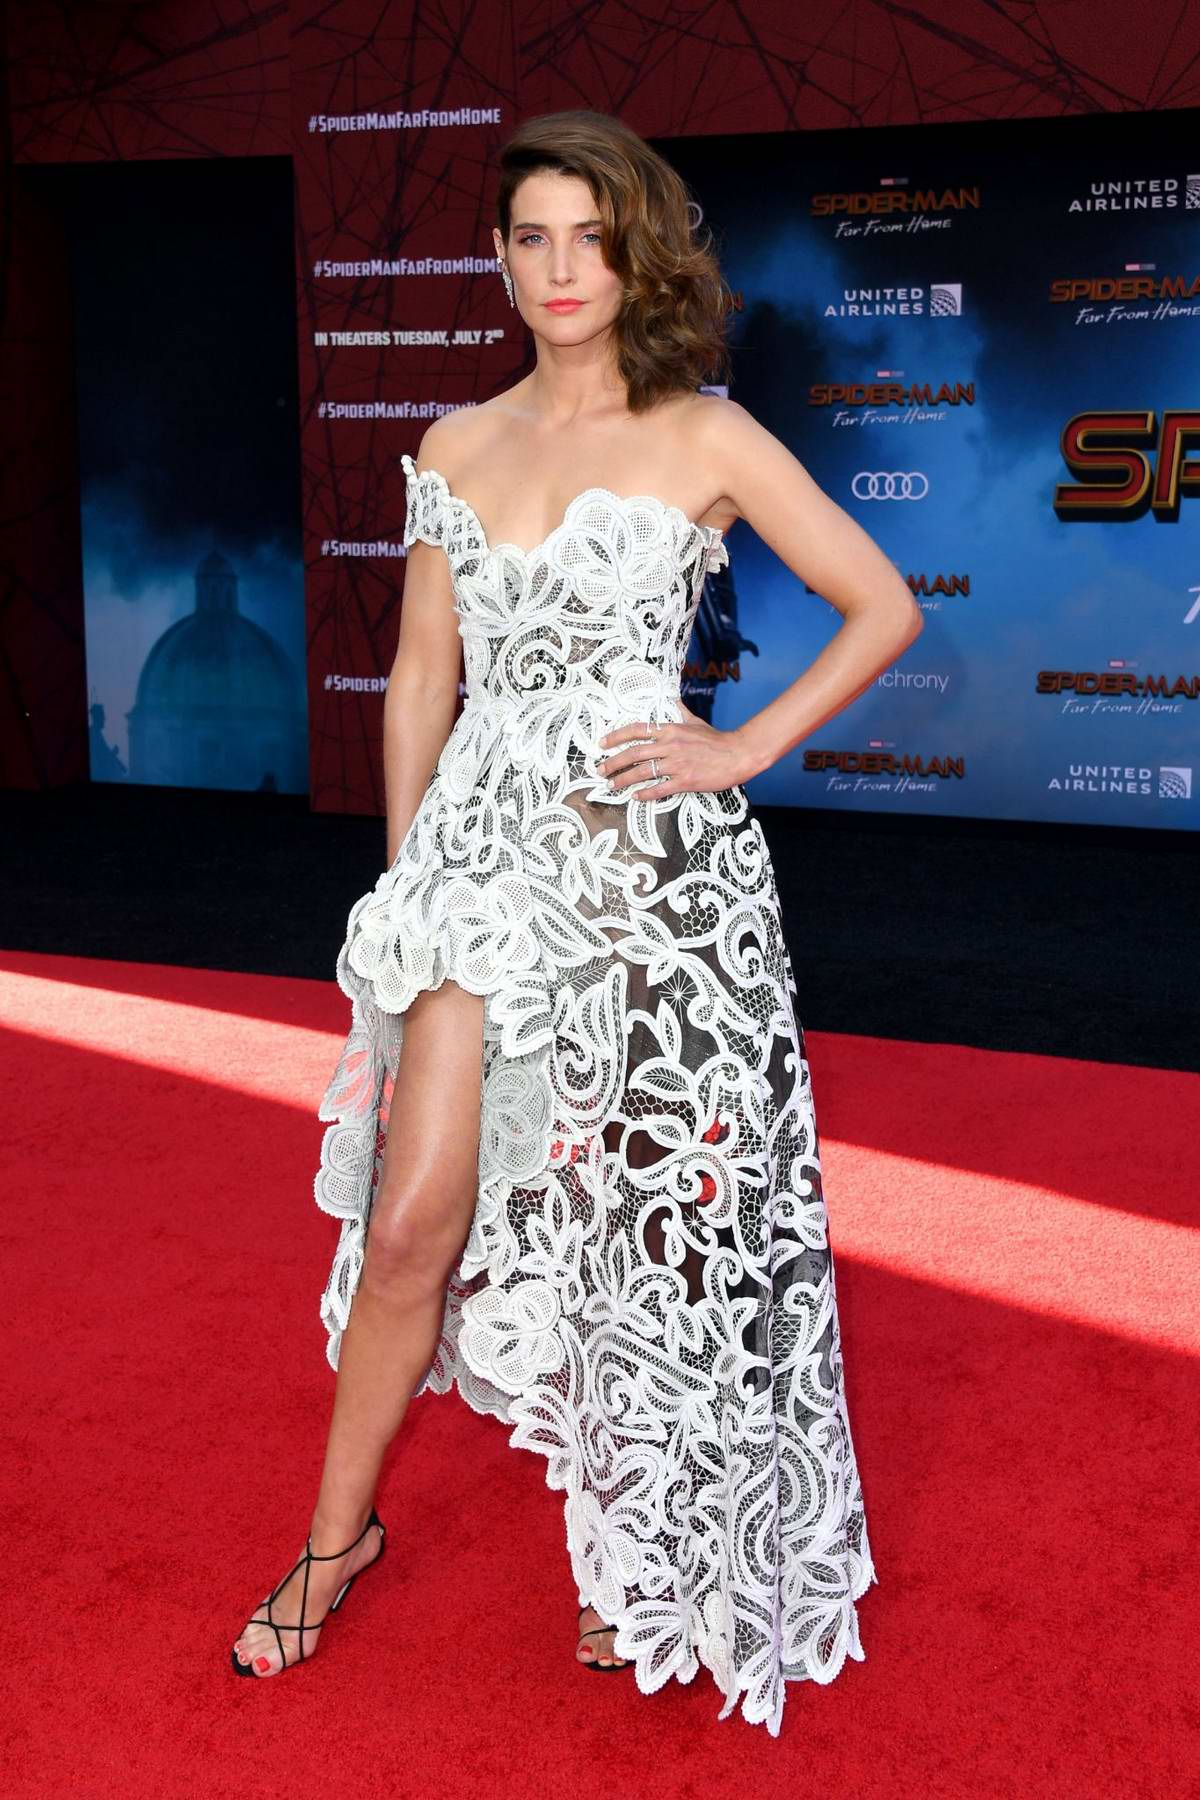 Cobie Smulders attends the premiere of 'Spider-Man: Far From Home' at TCL Chinese Theatre in Hollywood, California